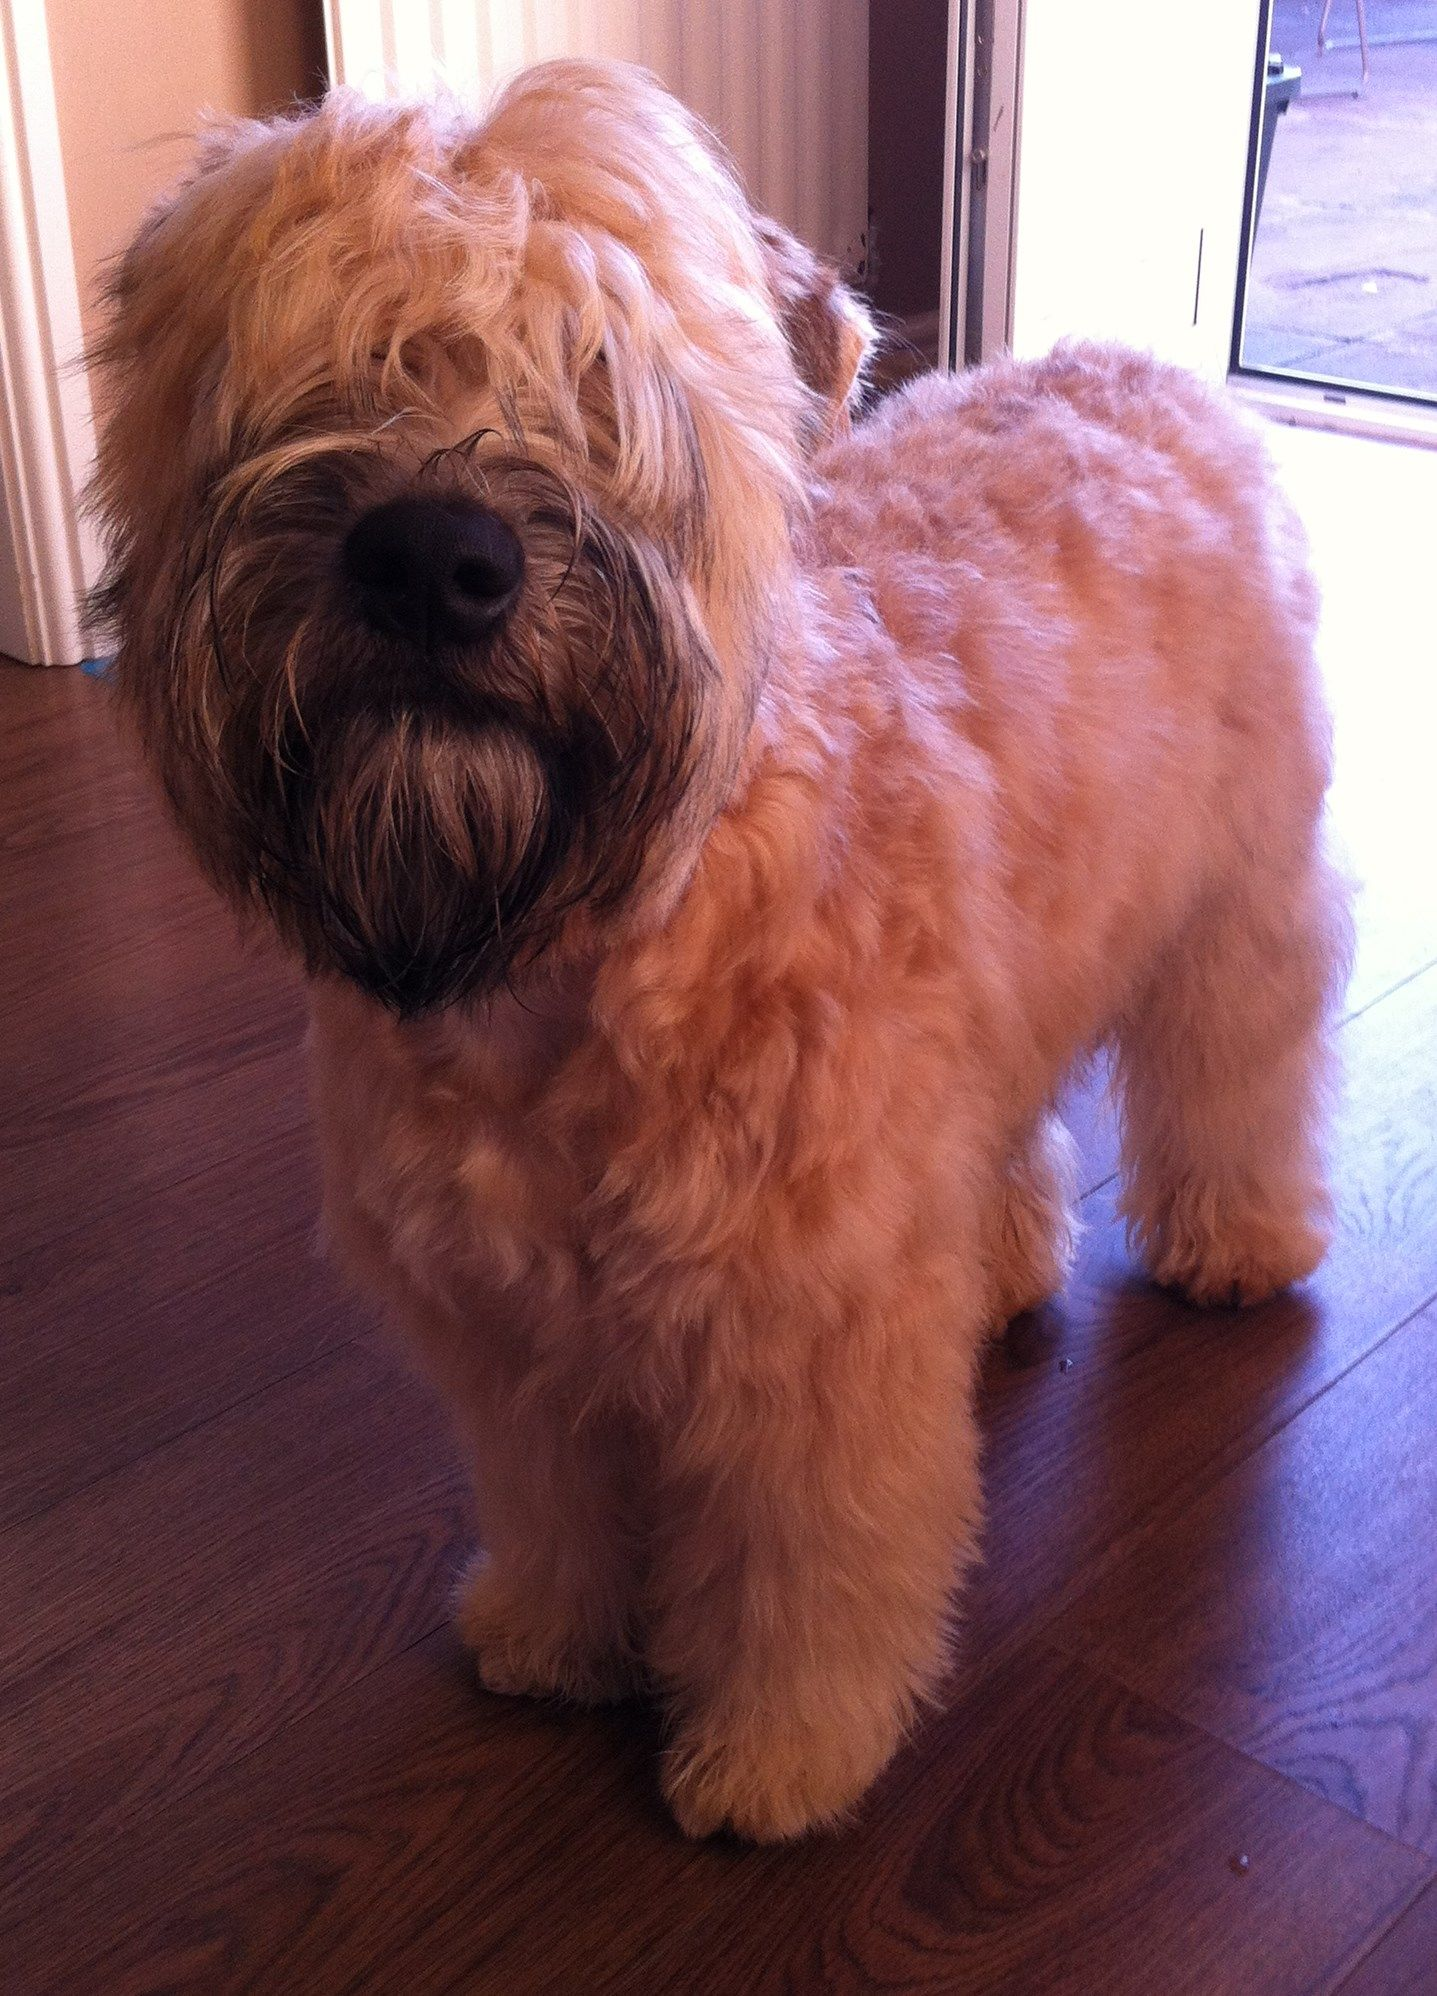 the traditional soft coated wheaten terrier haircut dog ted the soft coated wheaten terrier aged 25wks showing